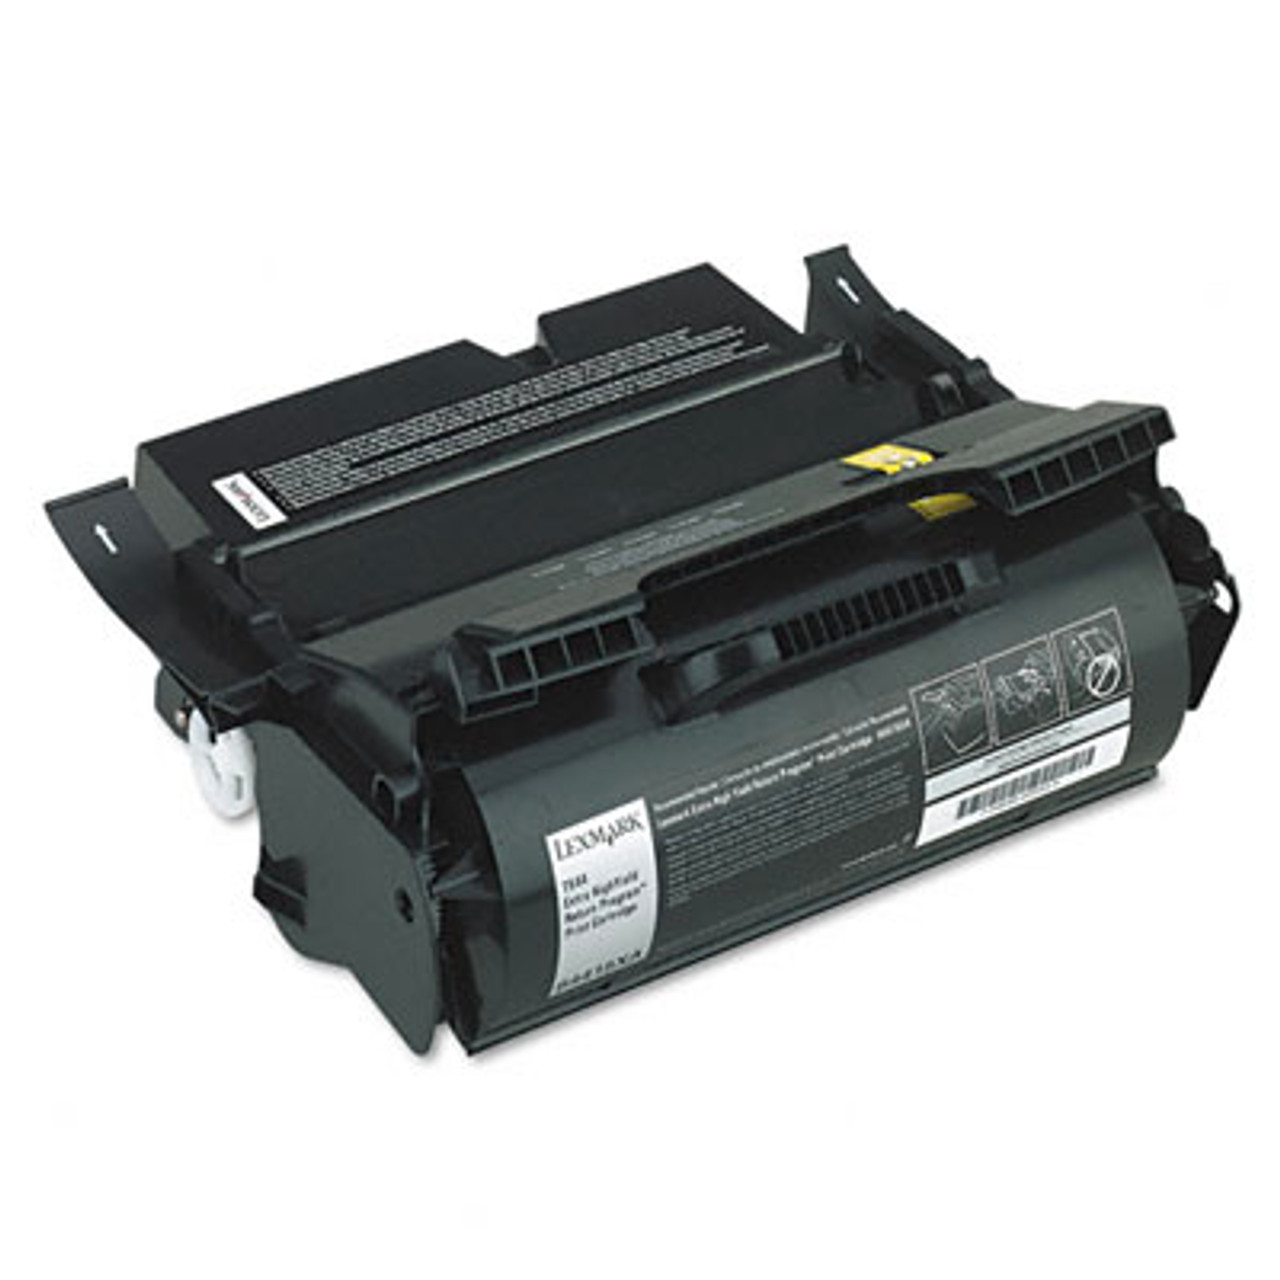 Lexmark XS654 Toner Cartridge - Compatible